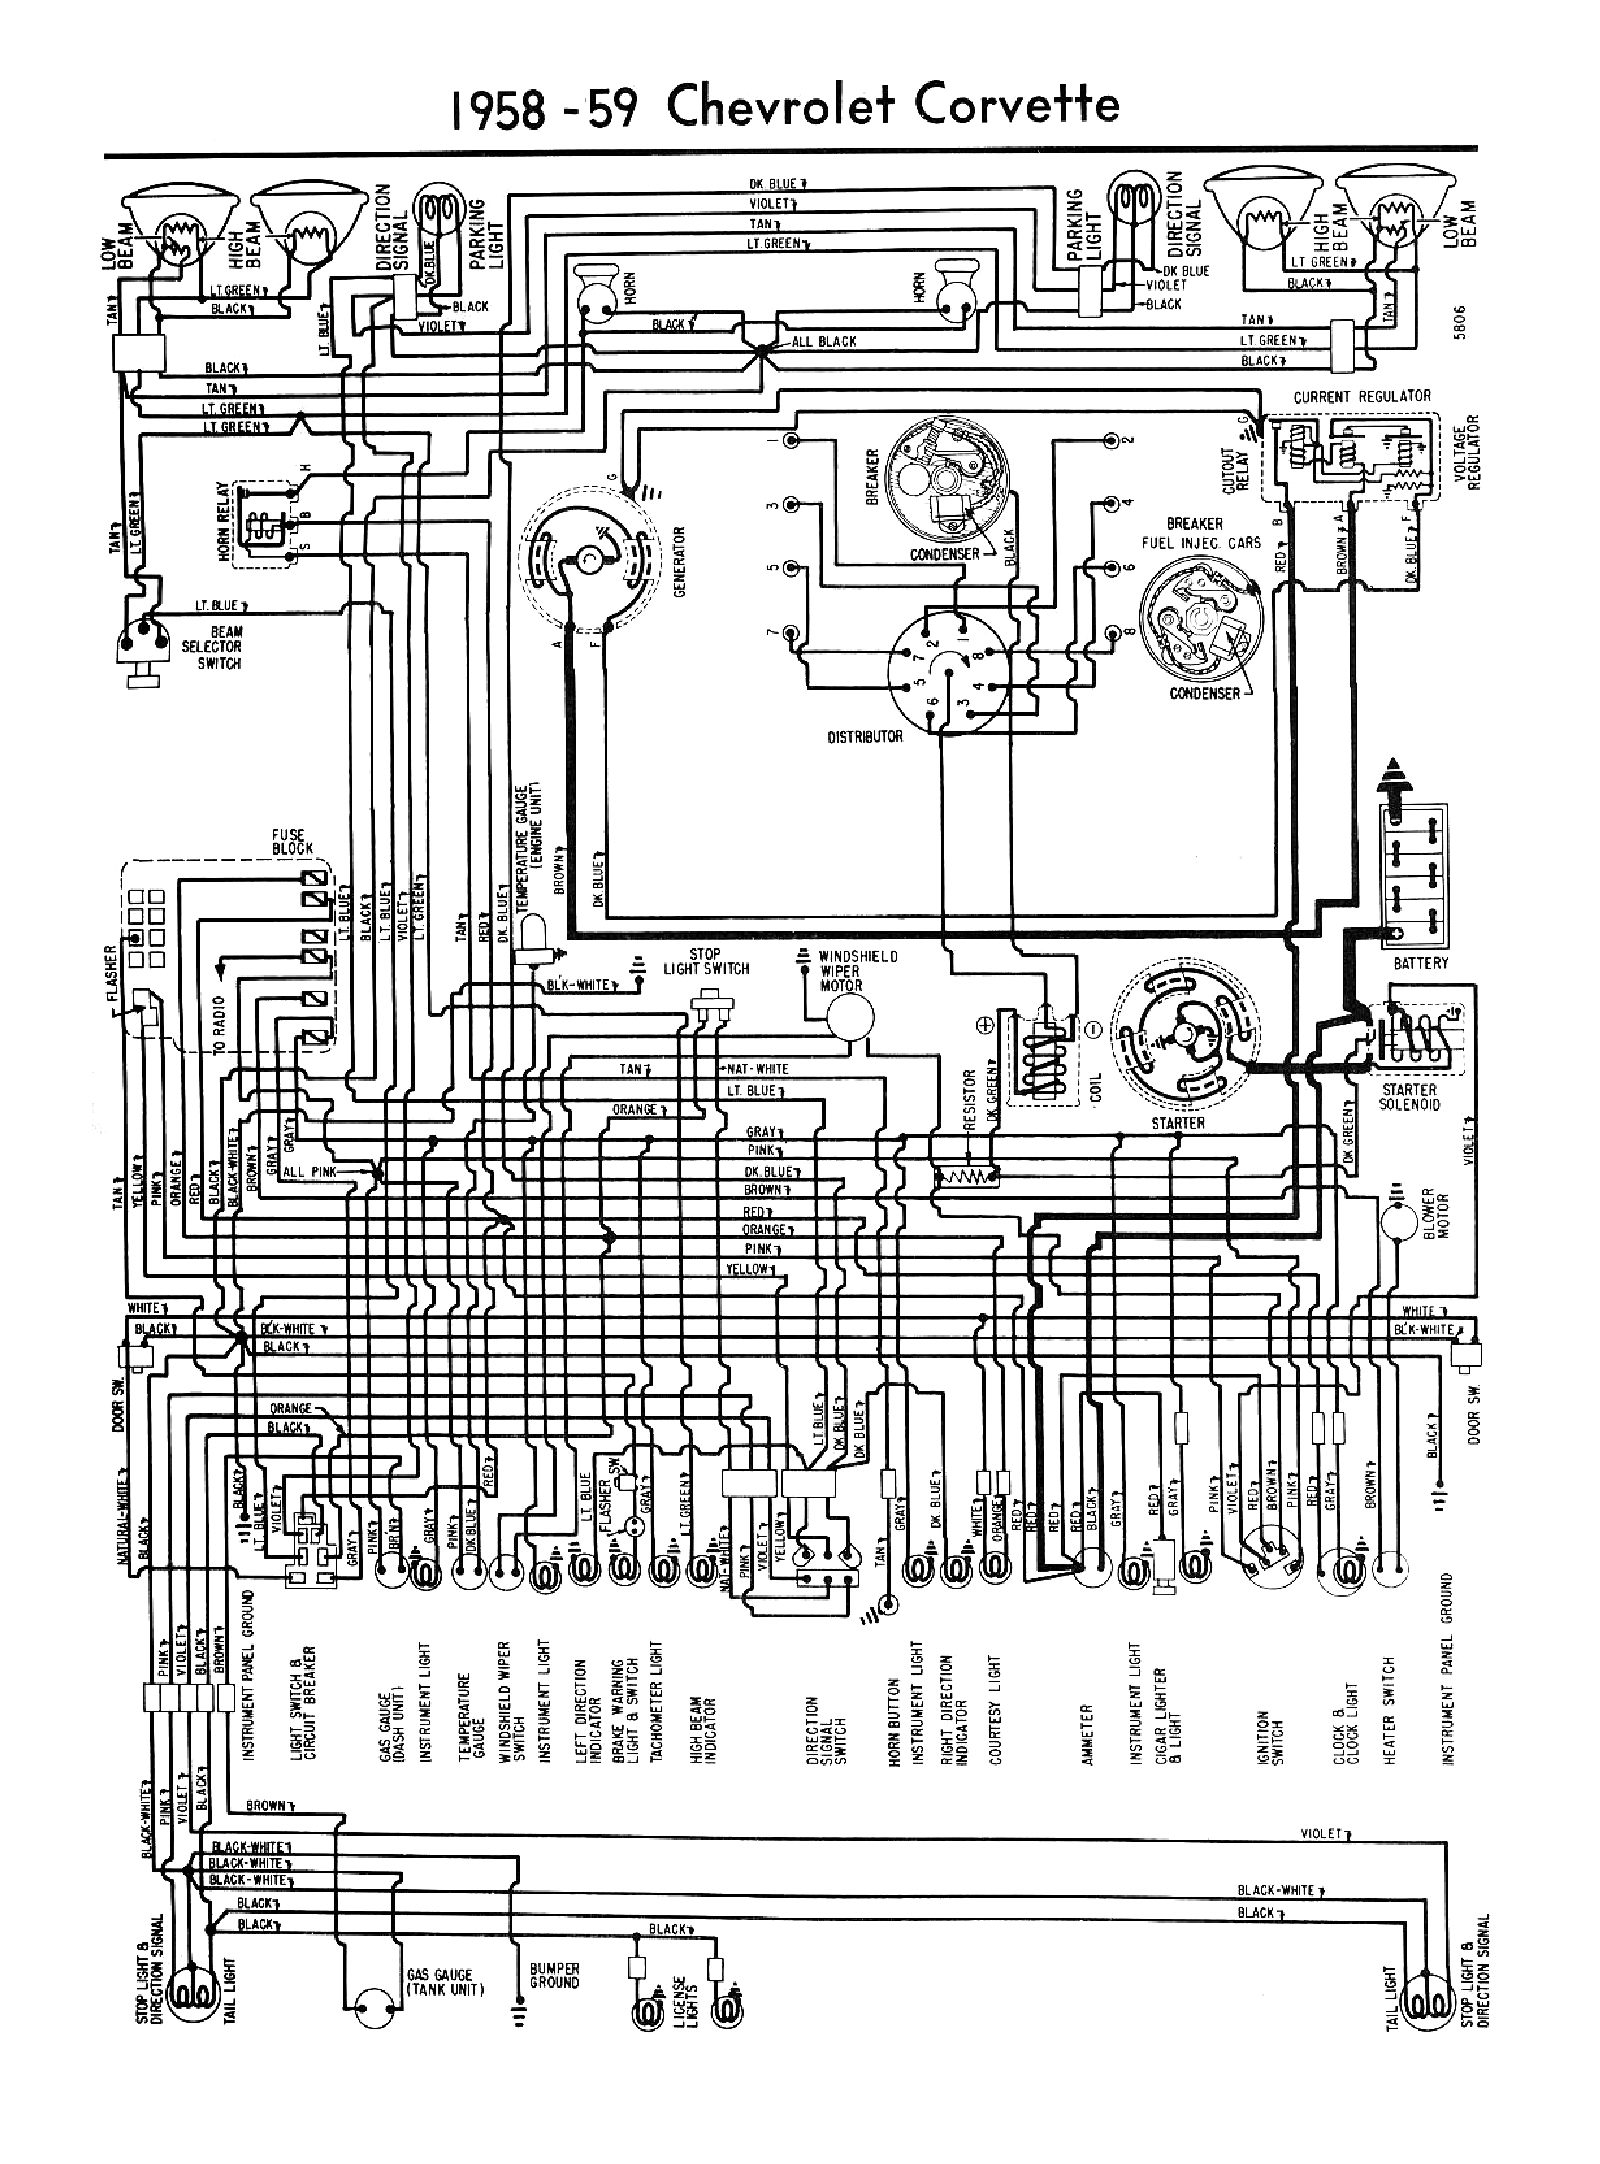 1972 chevy pickup fuse box machine repair manual 1997 Chevy 1500 Wiring Diagram